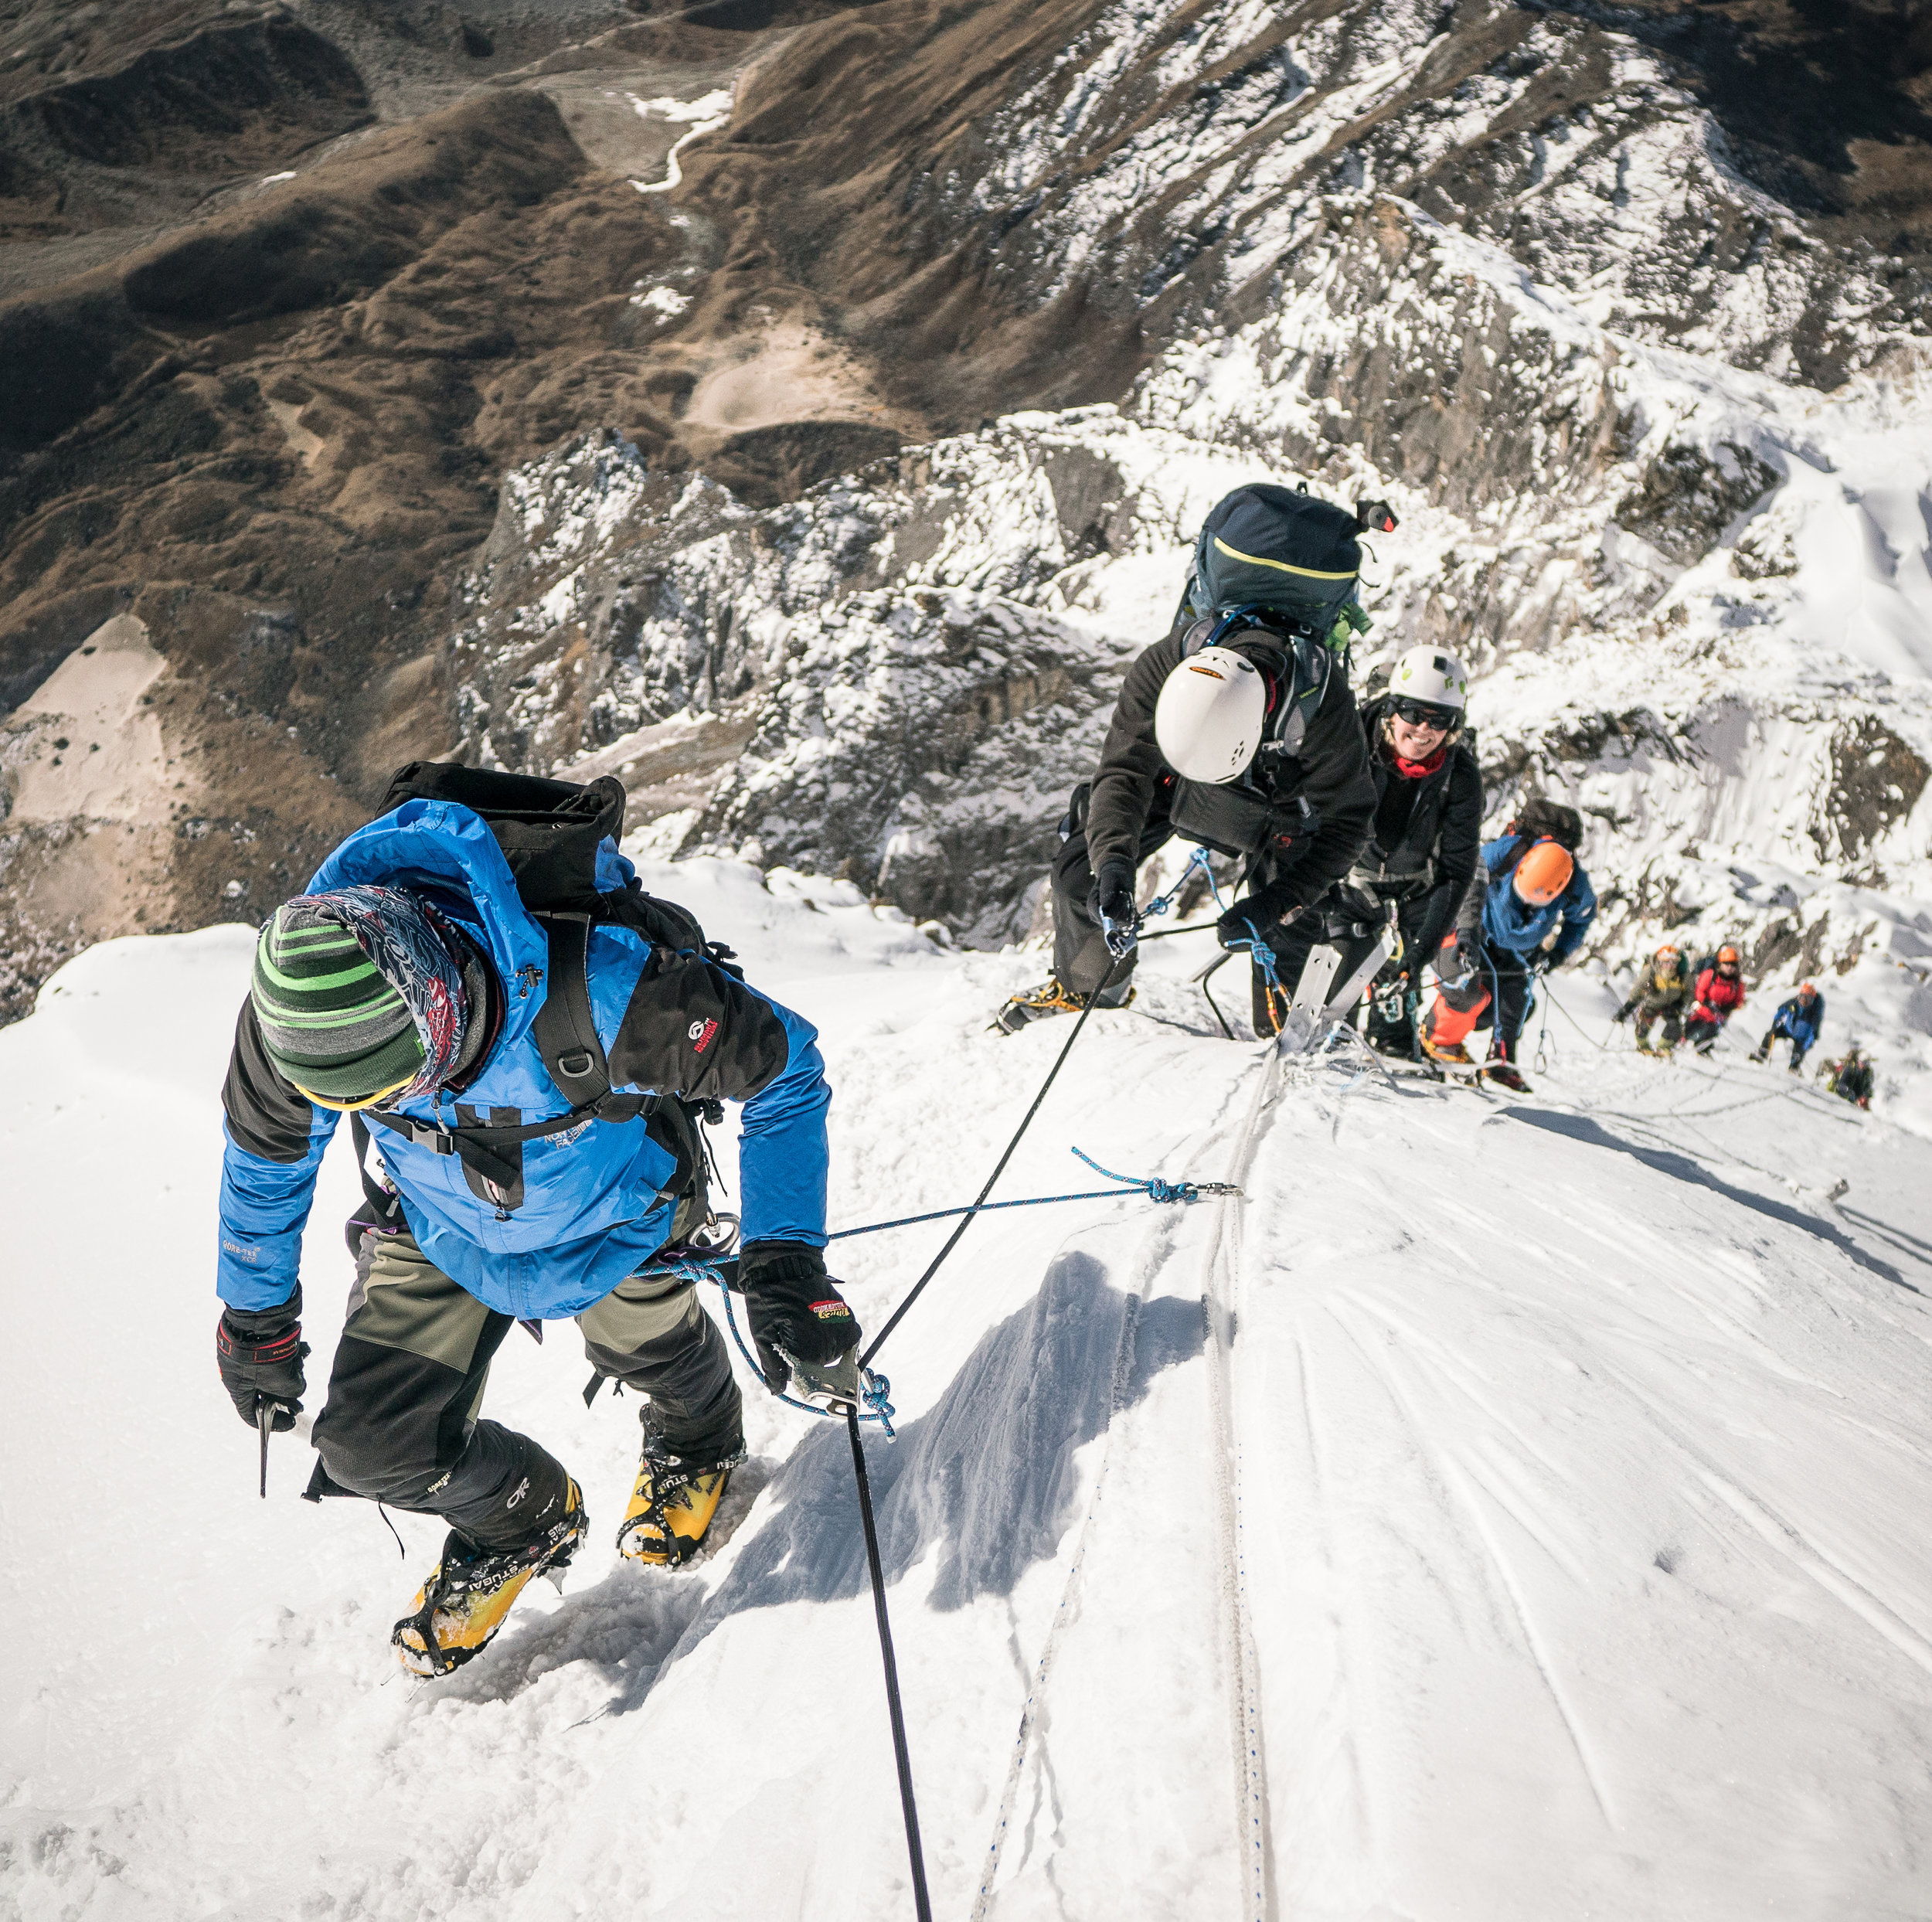 Trekking / Mountain Climbing - Everest Region, Nepal  Date: April 2018 Objective: Trek from Lukla airport to Everest Basecamp and Summit the 20,000ft Lobuche East